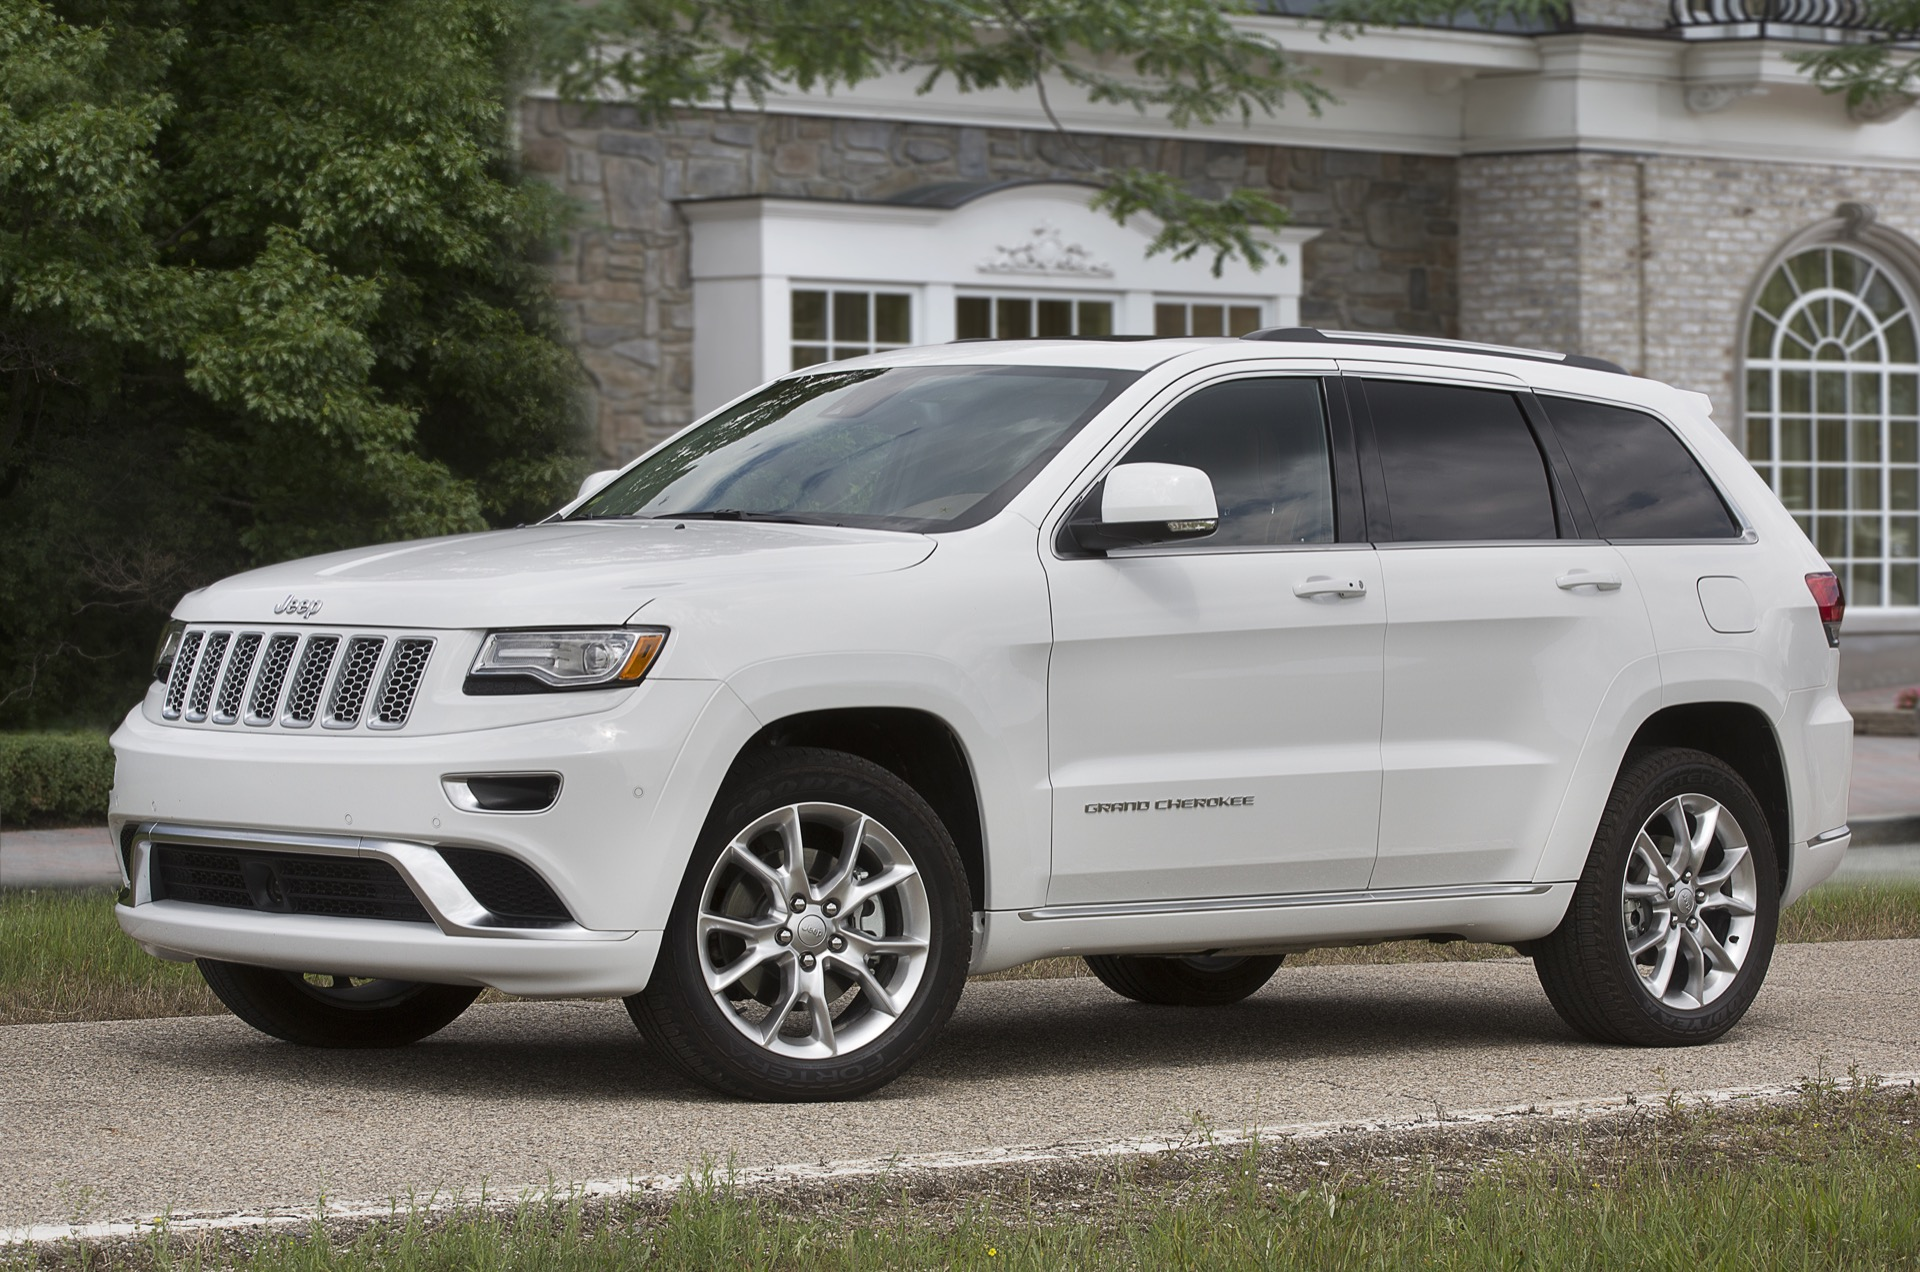 jeep grand cherokee picture - photo #7